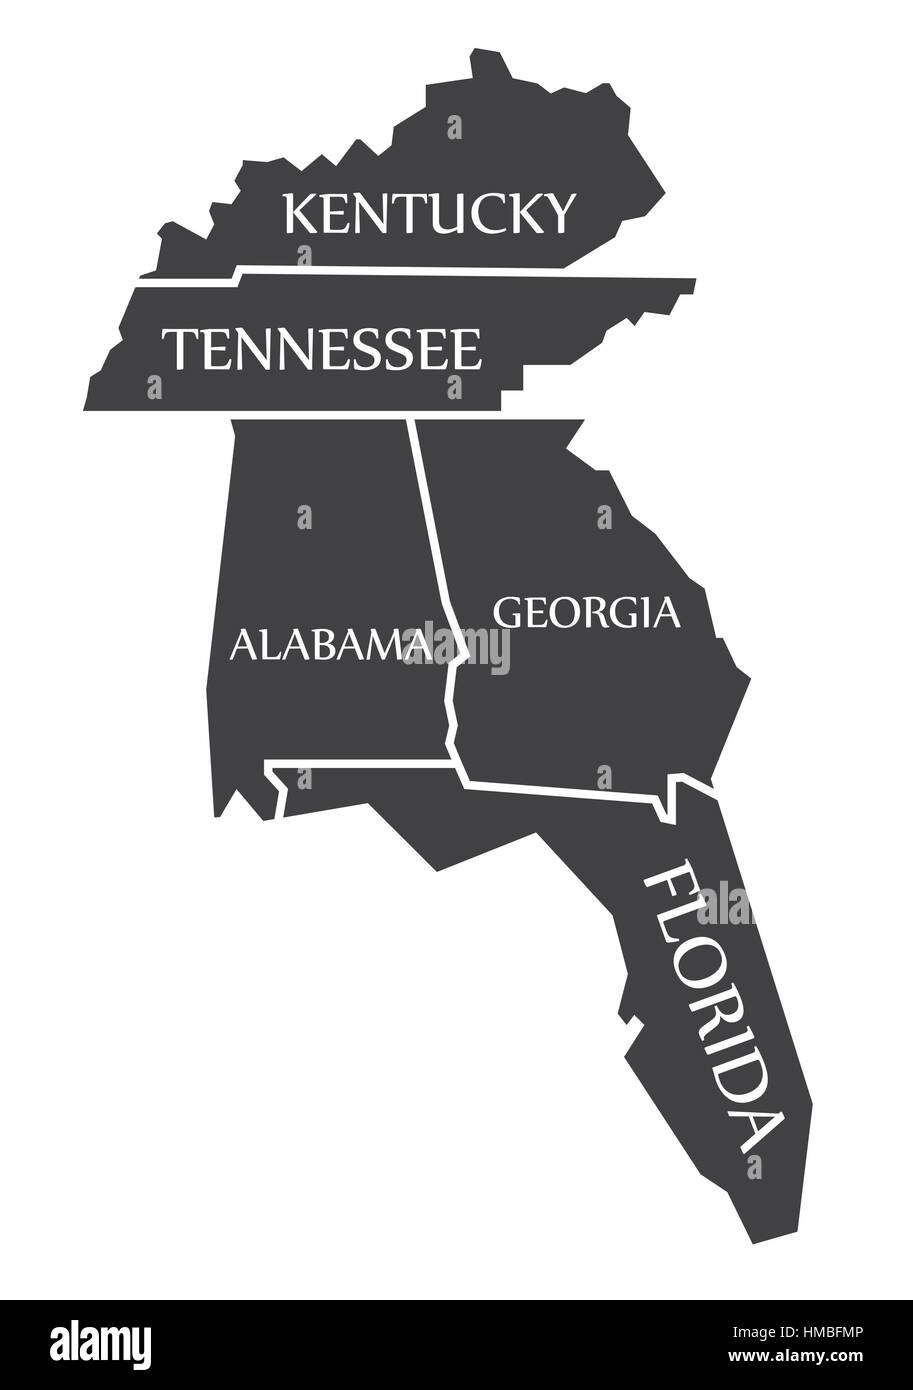 Florida And Georgia Map.Kentucky Tennessee Alabama Georgia Florida Map Labelled